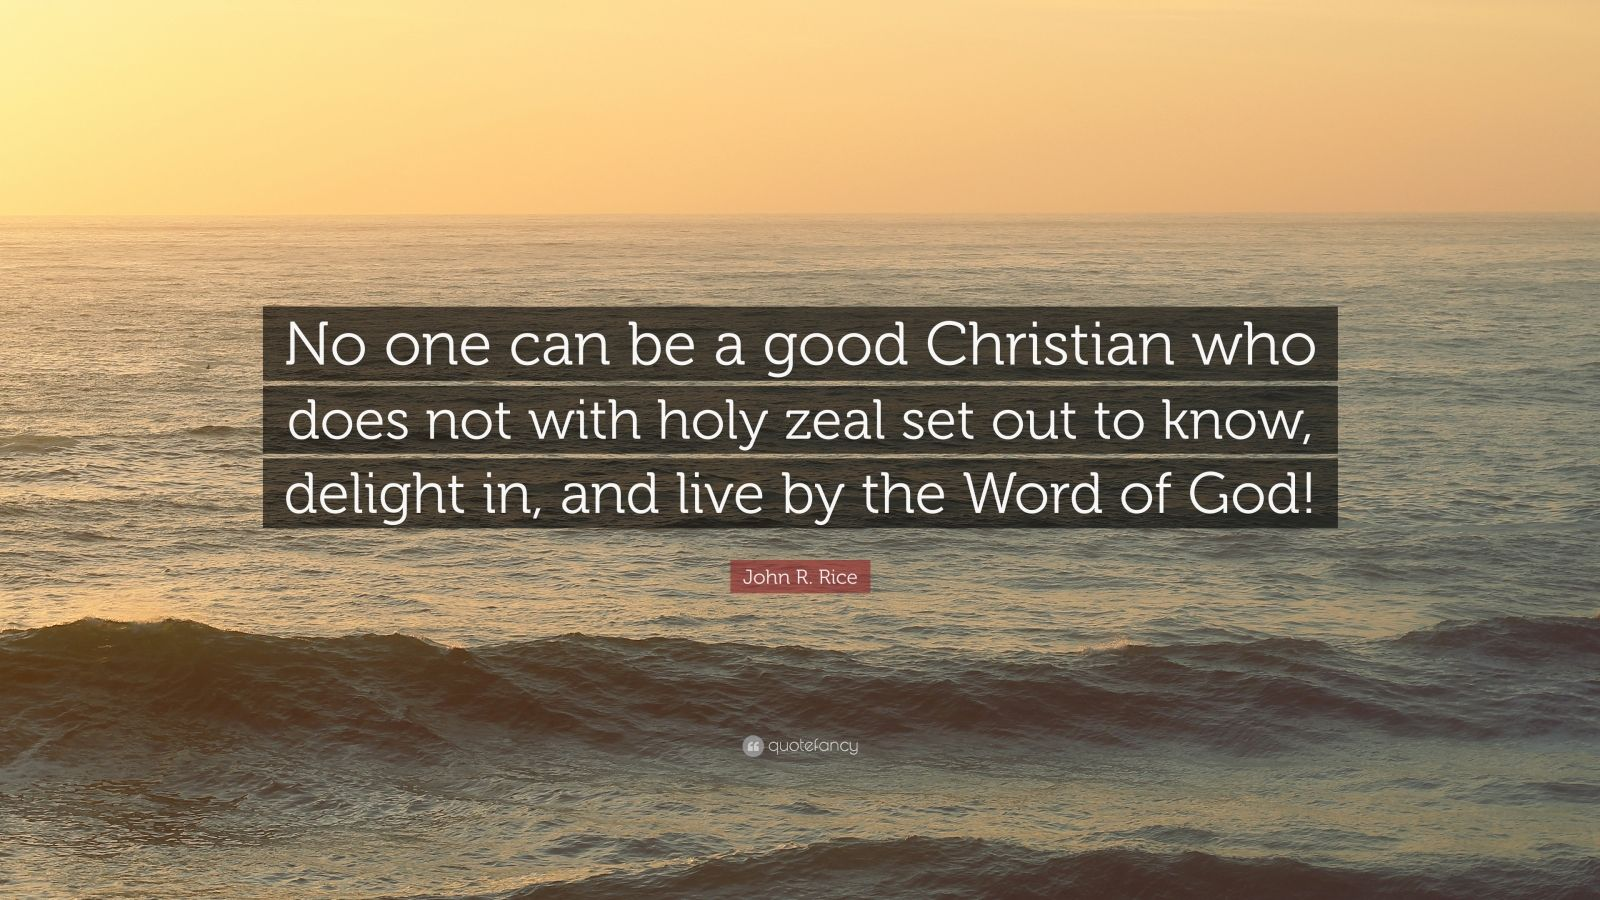 """John R. Rice Quote: """"No one can be a good Christian who does not with holy zeal set out to know, delight in, and live by the Word of God!"""""""